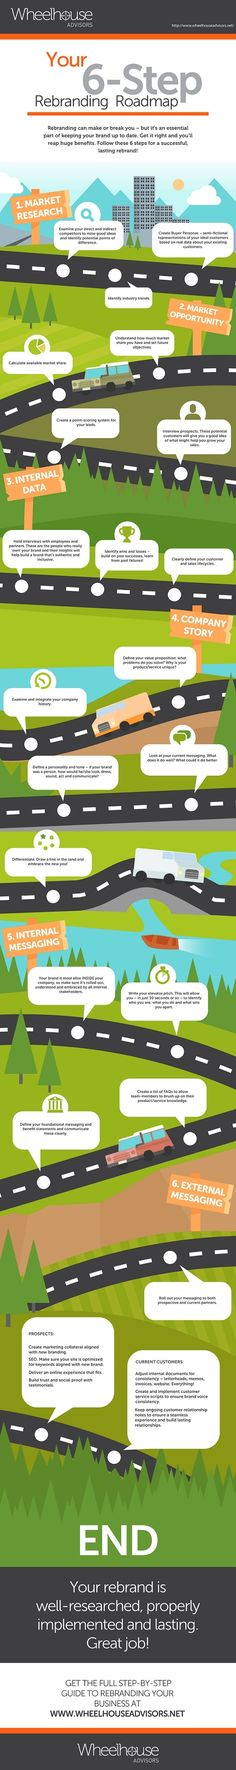 Your 6-Step Road Map to Rebranding